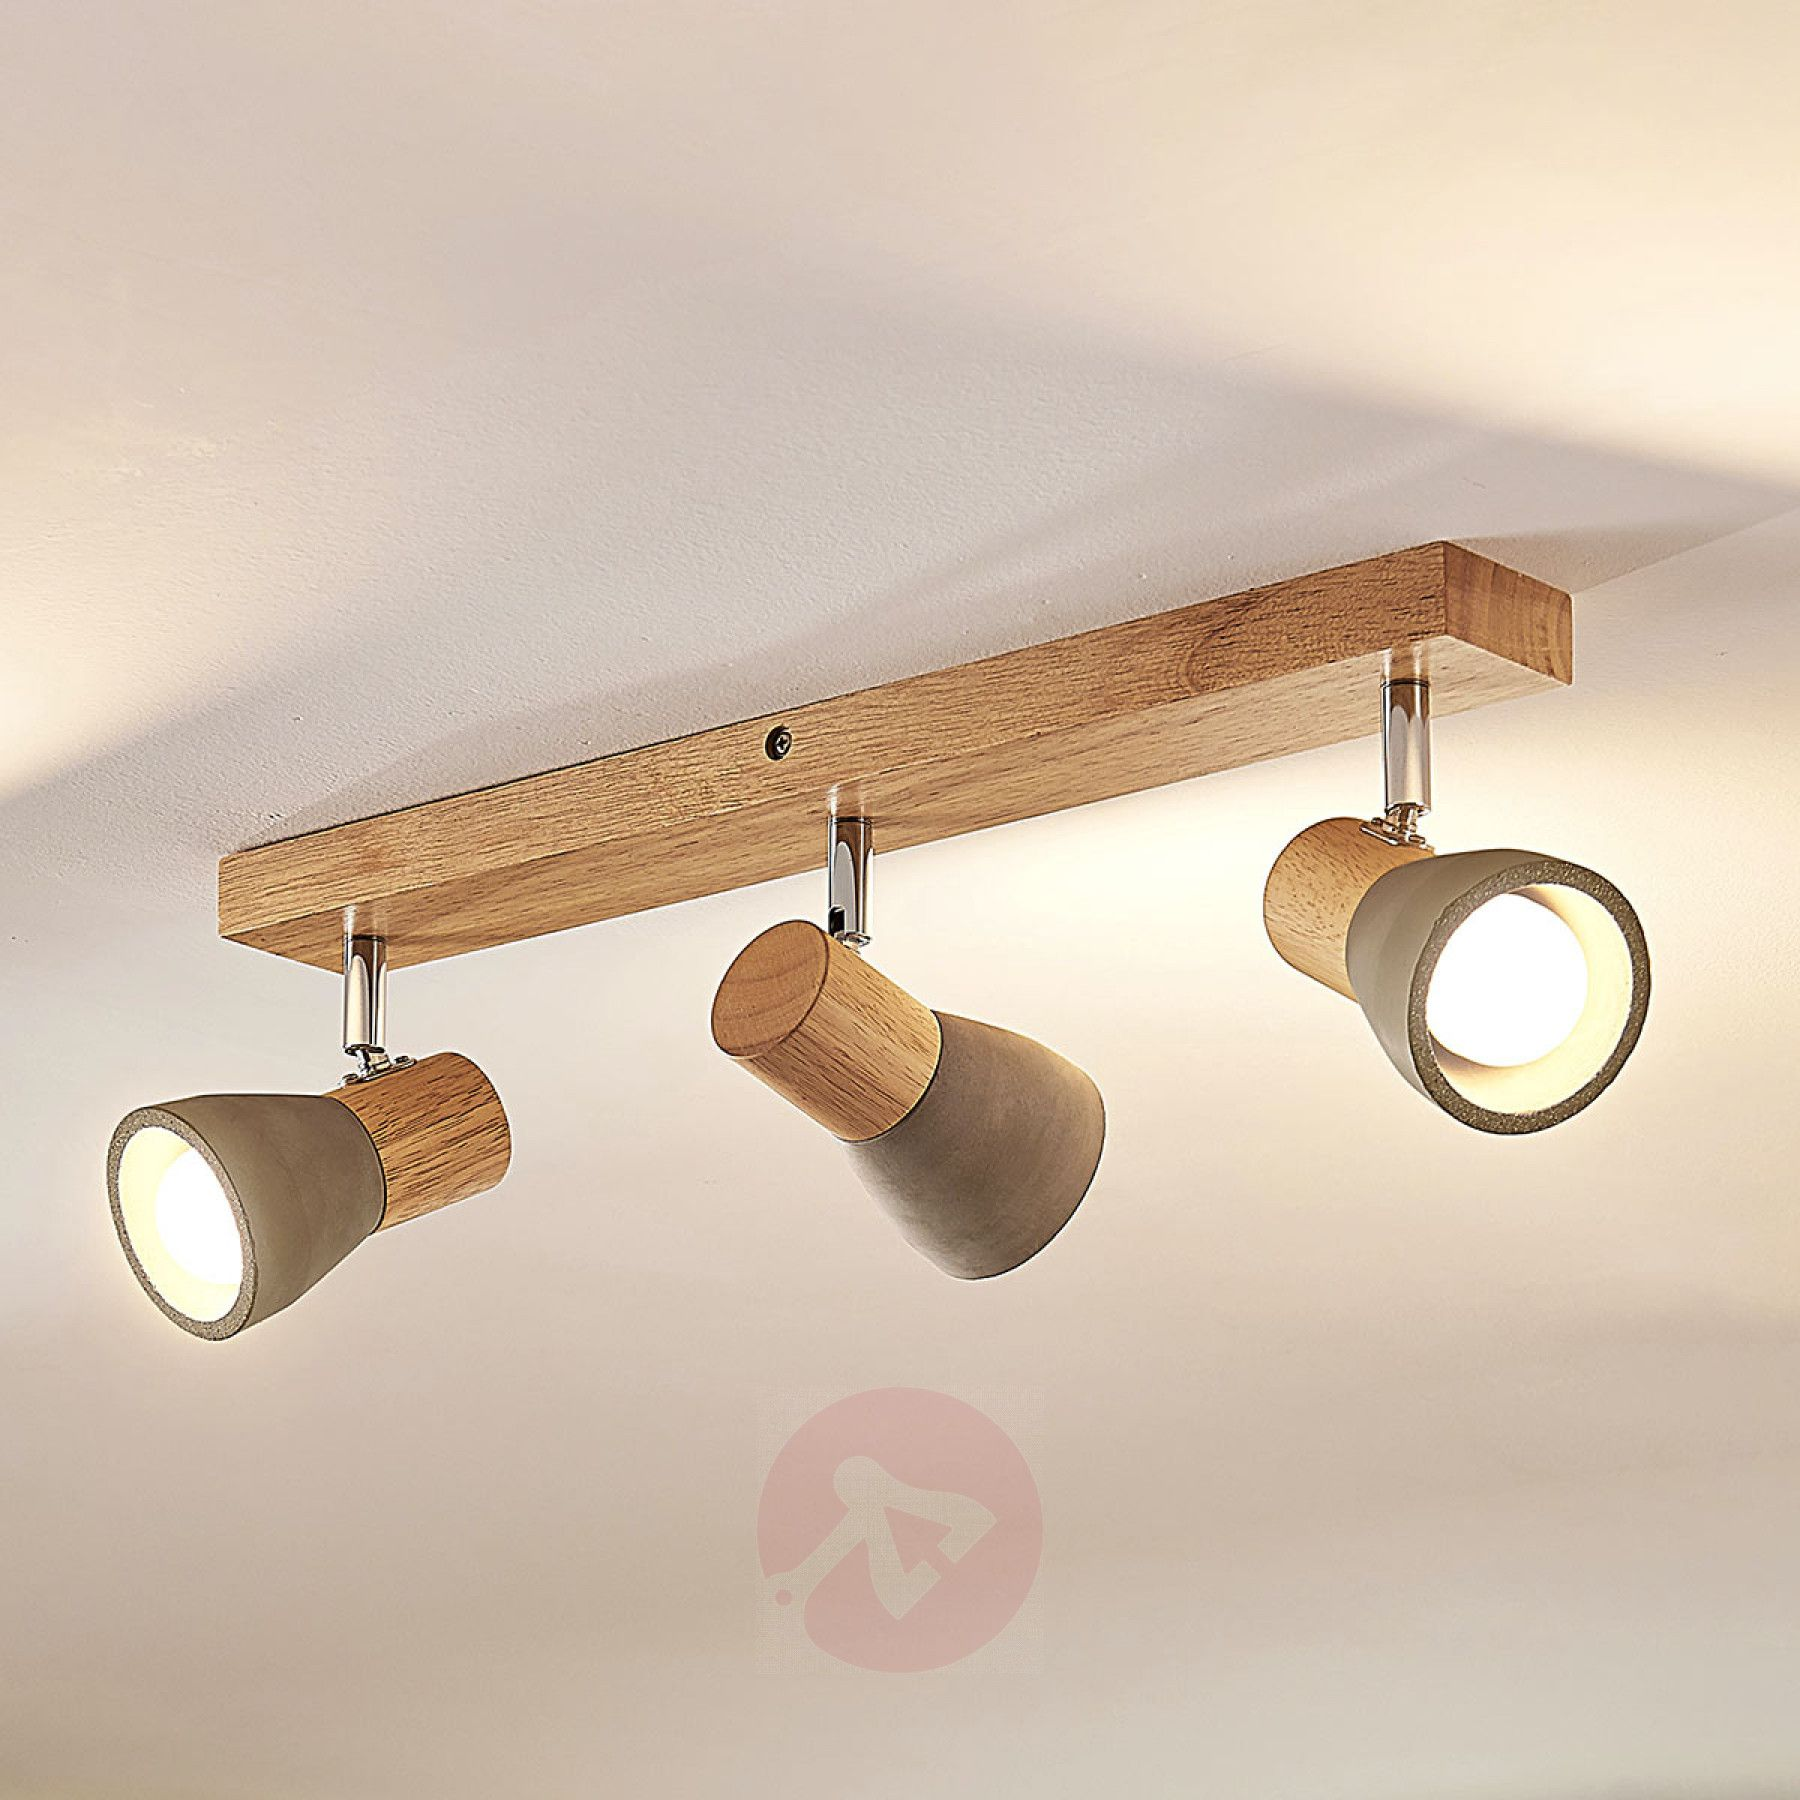 Skandinavische Strahler Von Lindby Grau In 2020 Ceiling Lights Led Ceiling Led Ceiling Lights